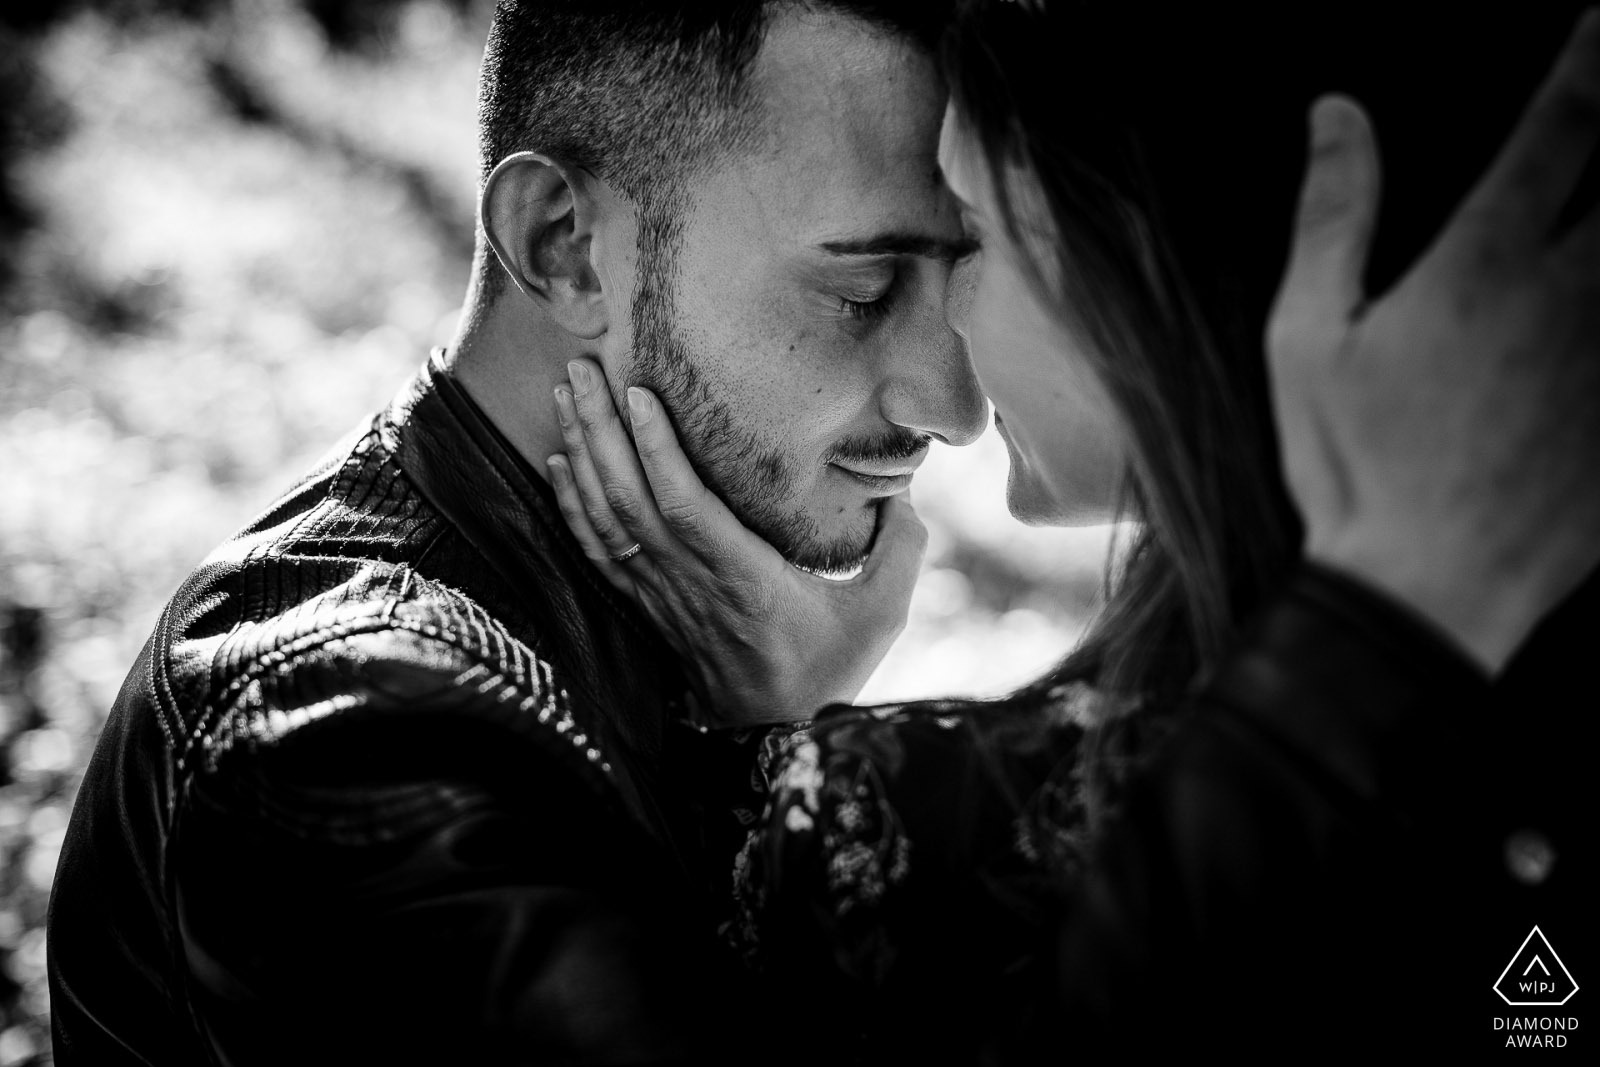 engagement-photo-shoot-session-2584082